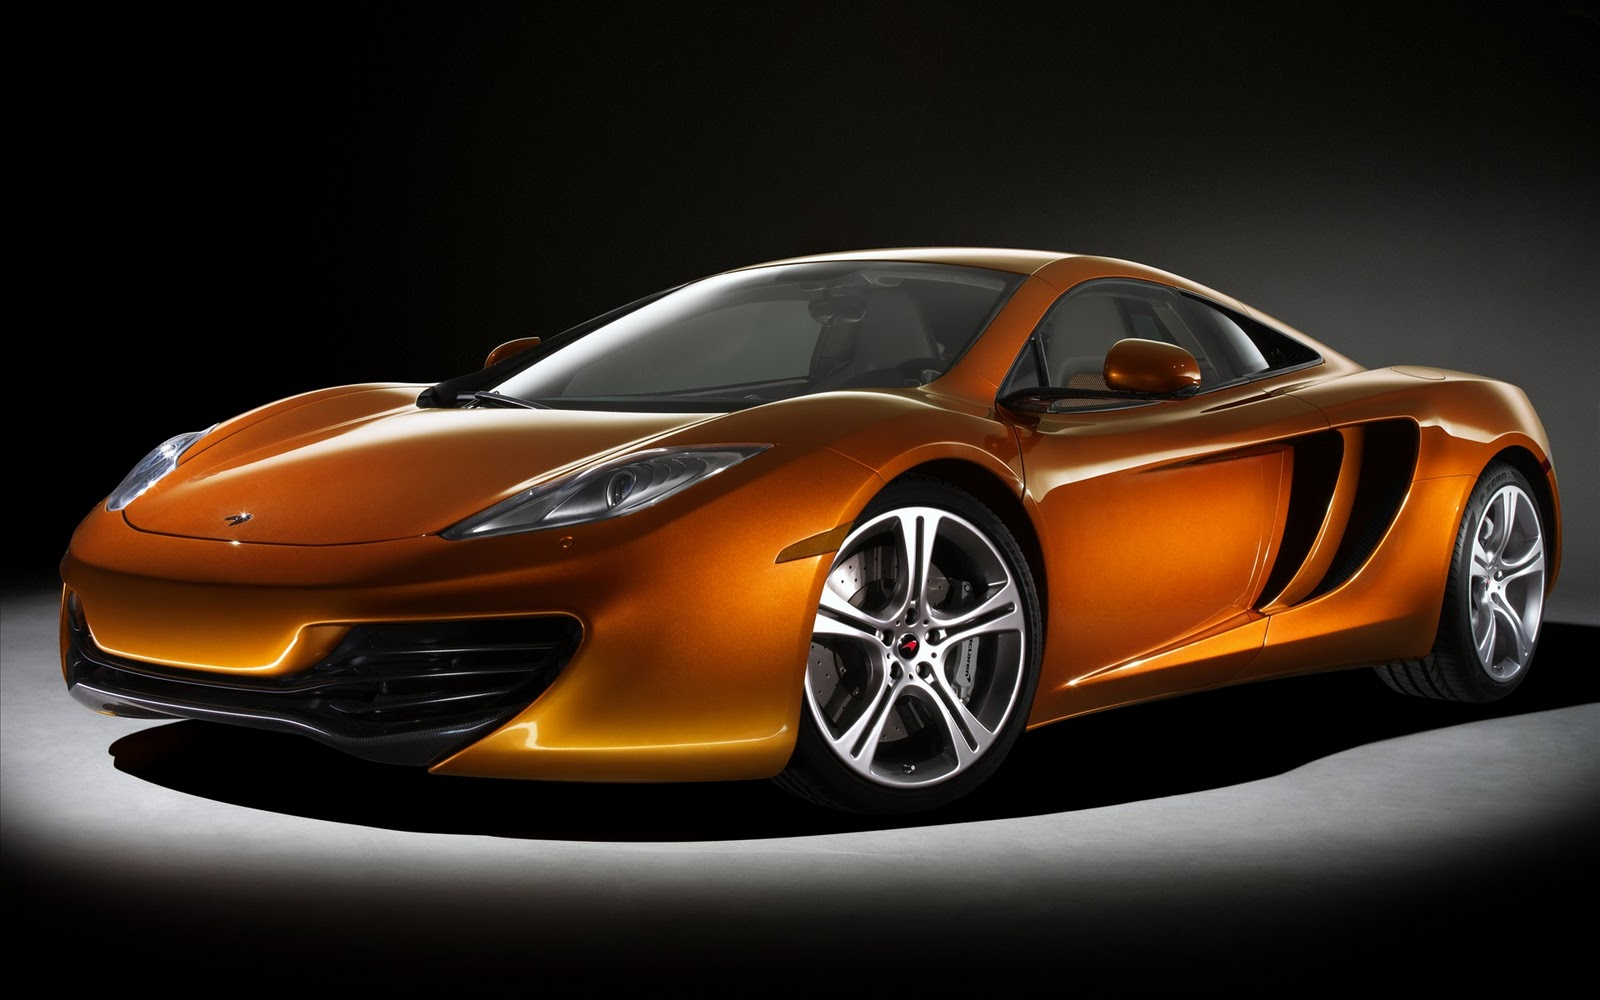 Cool cars wallpapers 2011 Cool Car Wallpapers 1600x1000